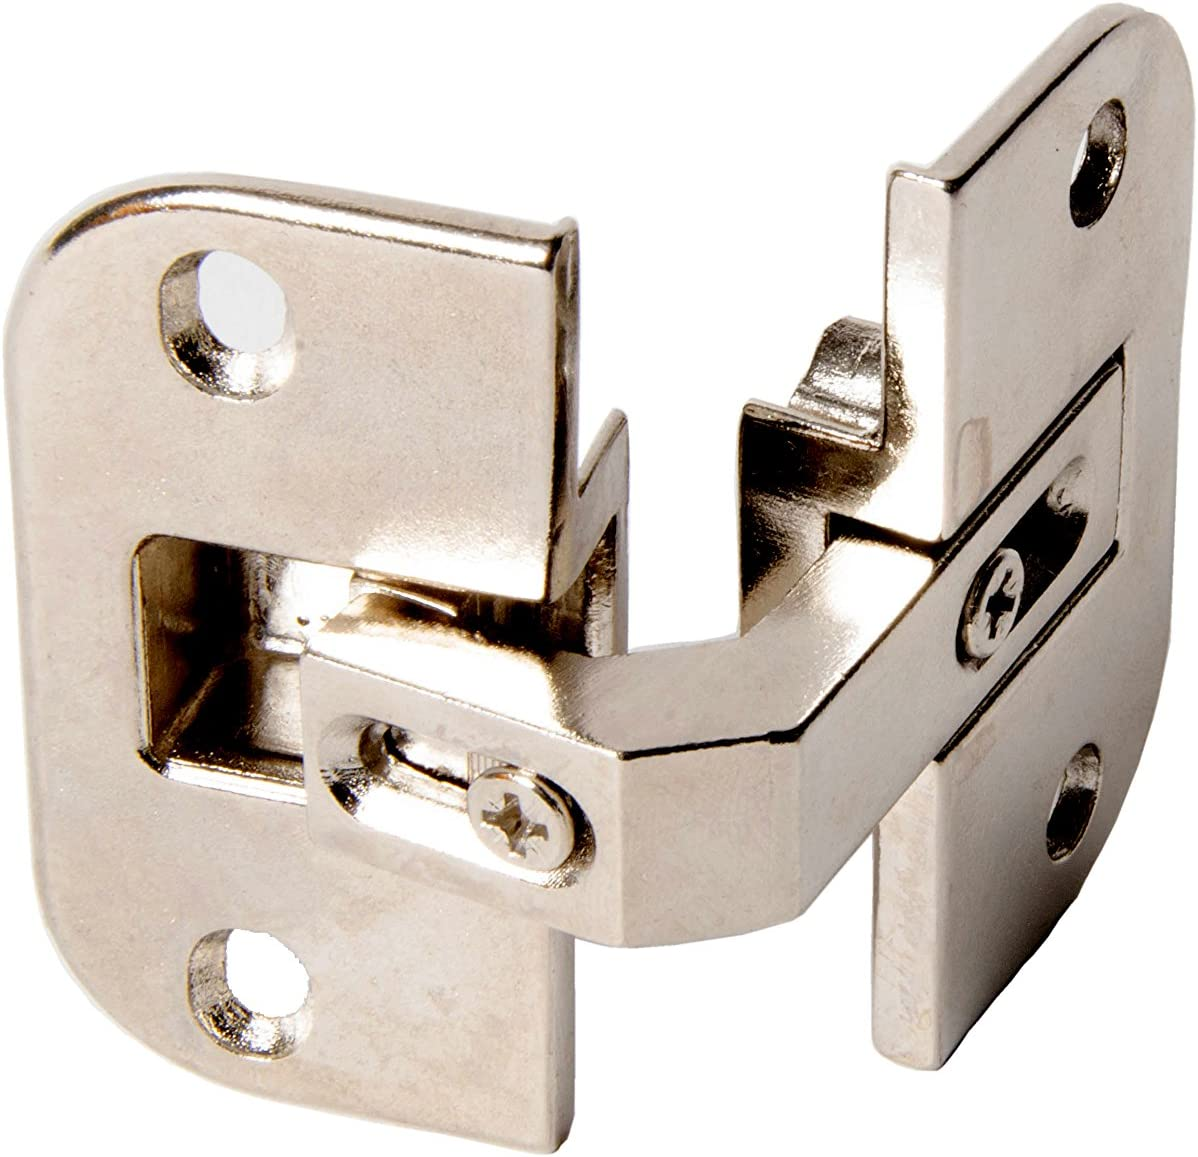 Pie-Cut Corner Hinge (Pair of Hinges) by Hafele America